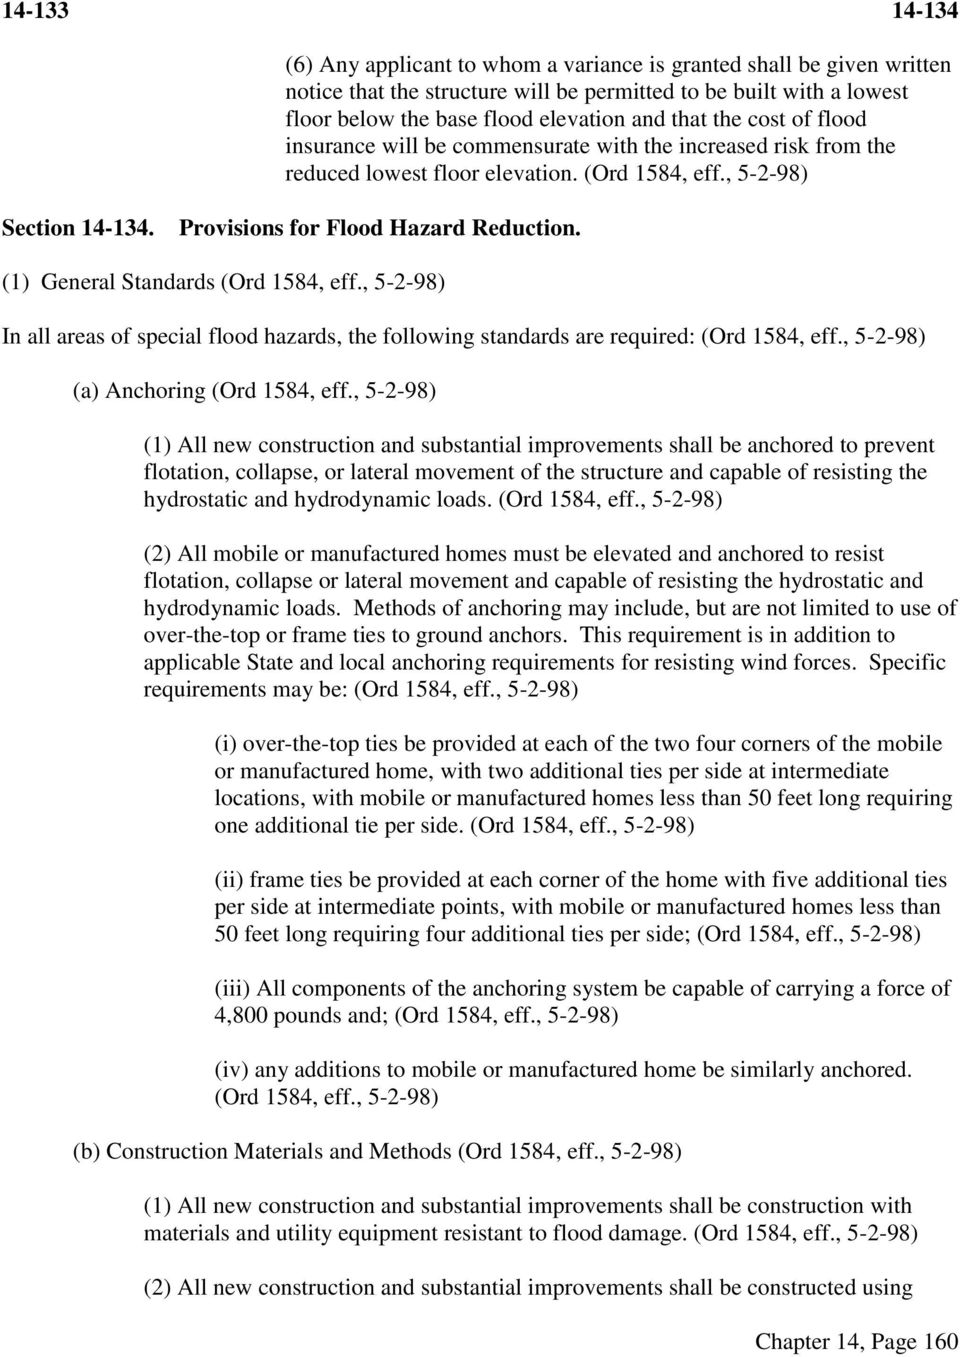 (1) General Standards (Ord In all areas of special flood hazards, the following standards are required: (Ord (a) Anchoring (Ord (1) All new construction and substantial improvements shall be anchored